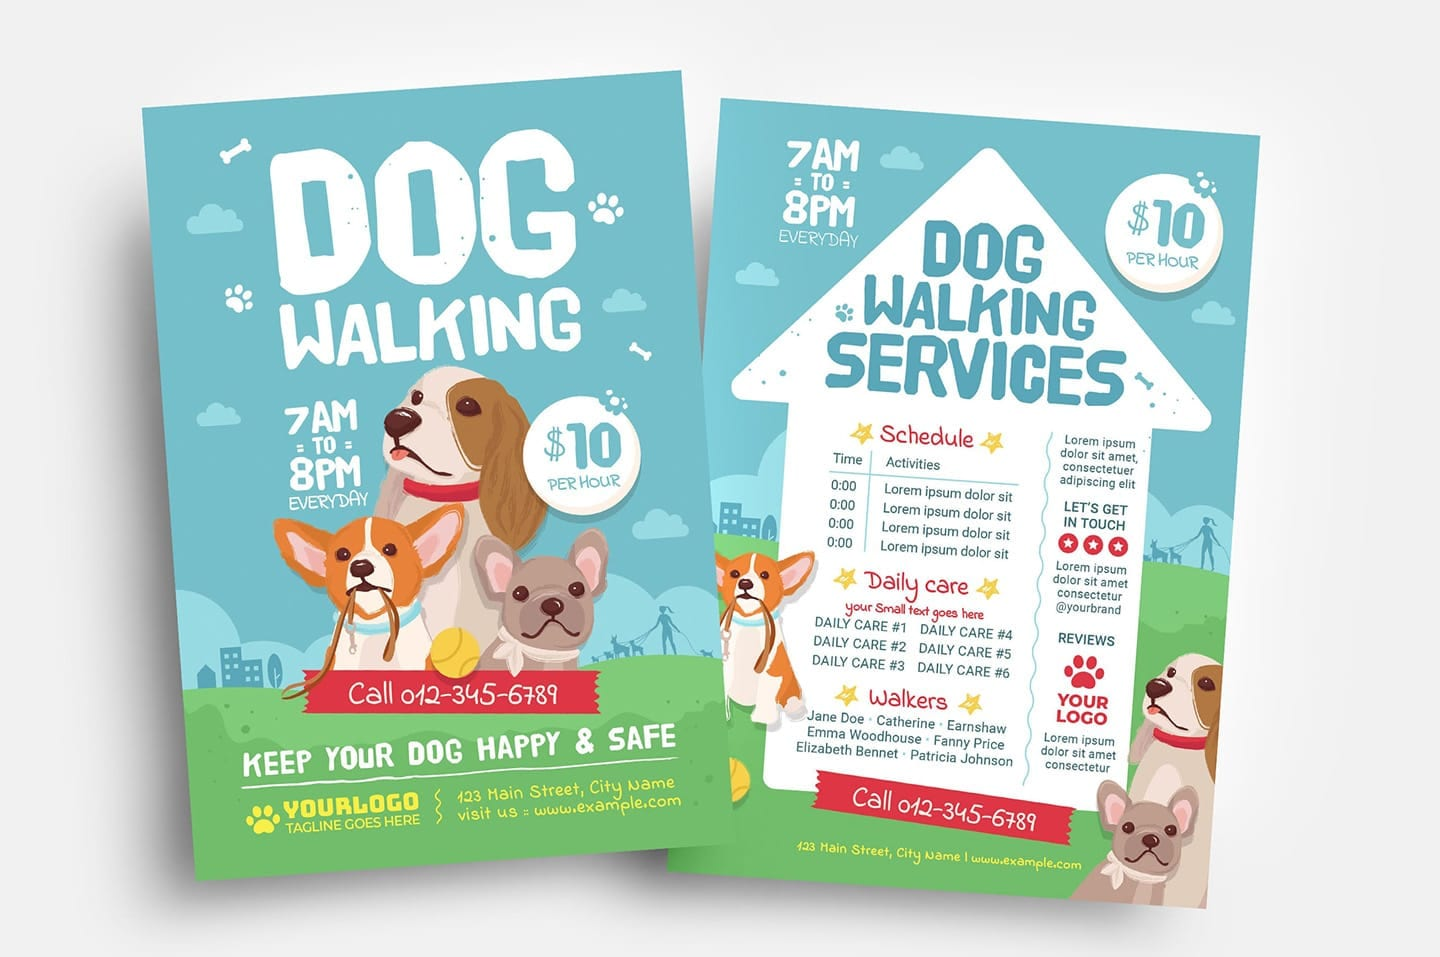 Dog Walking Template from brandpacks.com